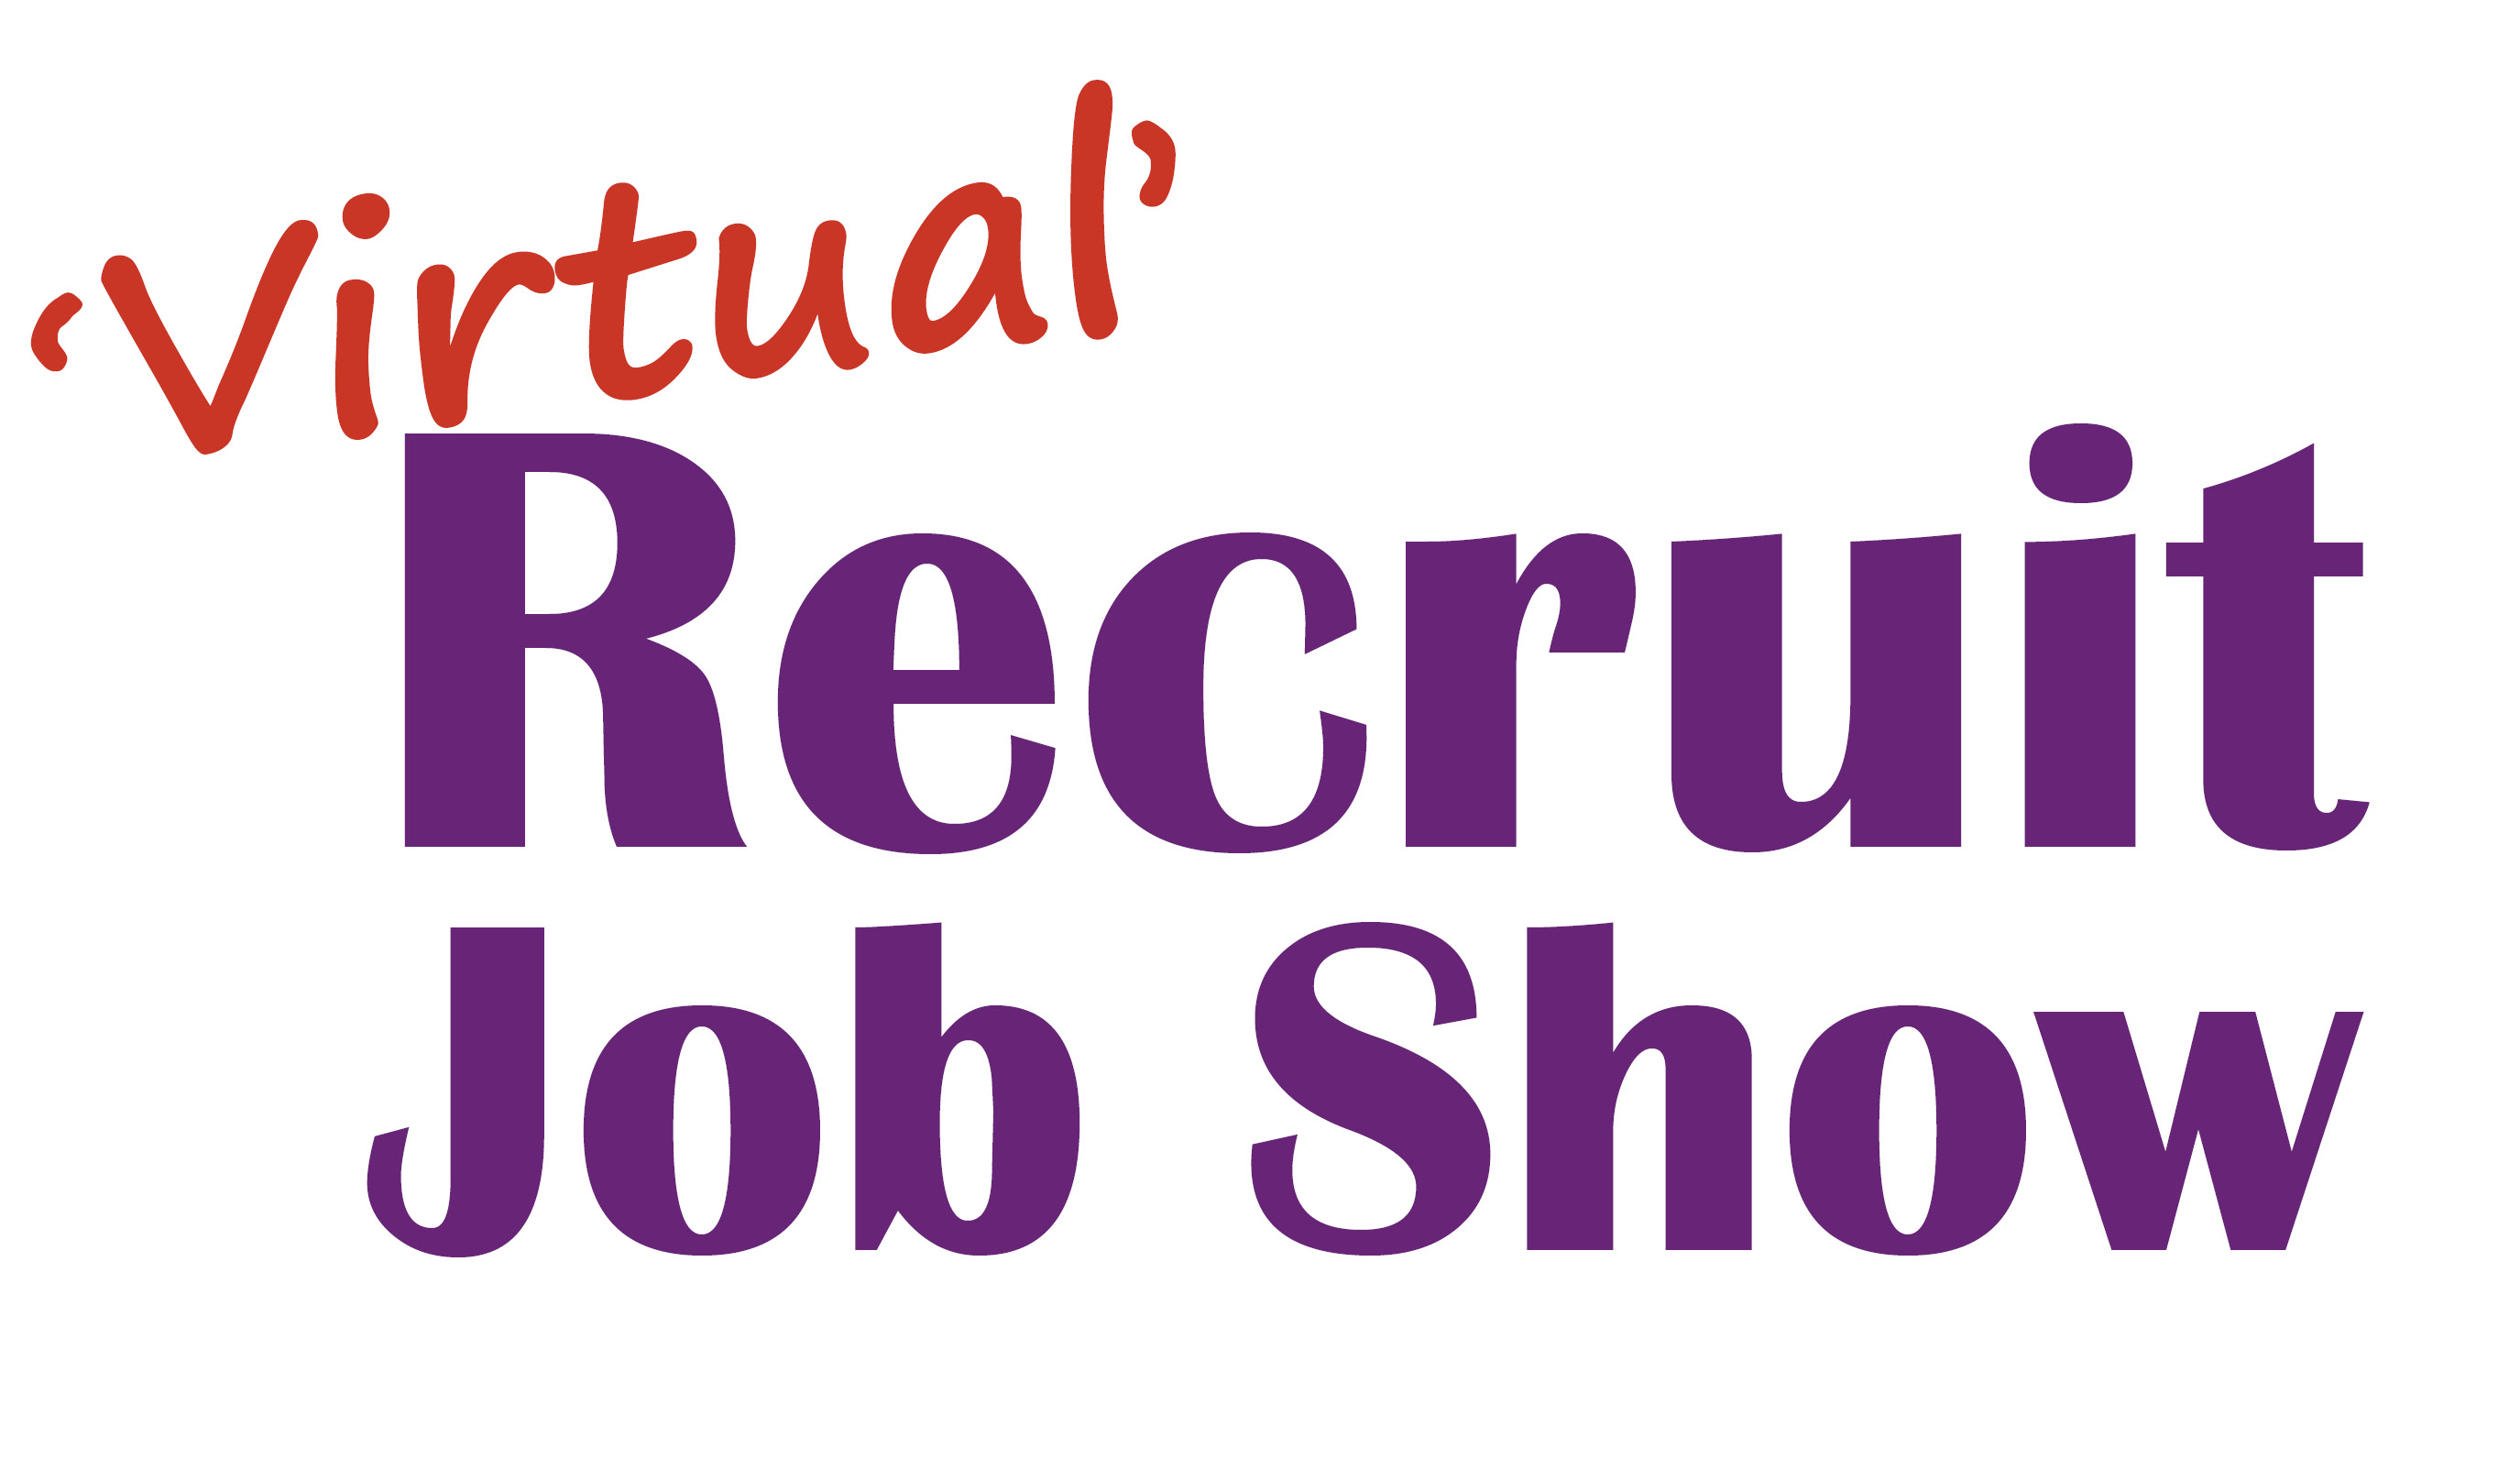 The Recruit Job Show is going virtual – and your company can get on board!